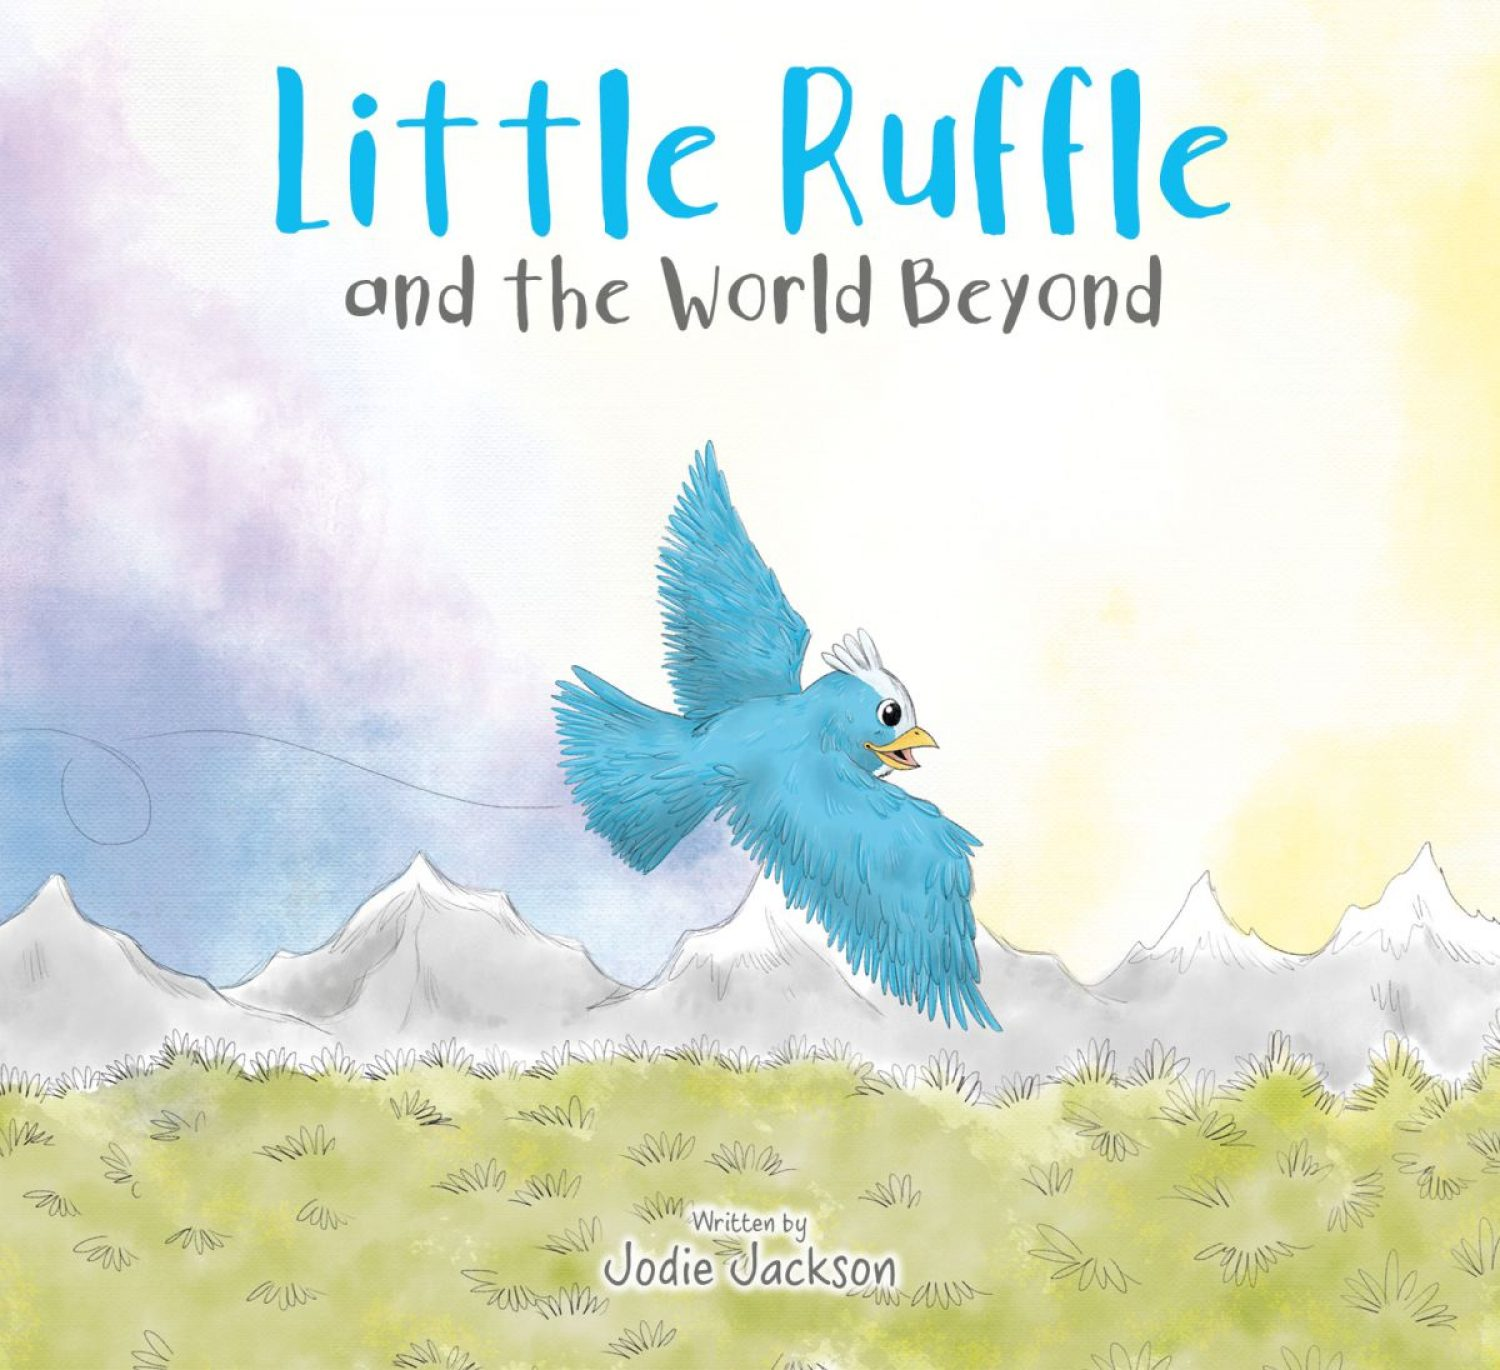 Little Ruffle and the World Beyond de Jodie Jackson se lanza esta semana